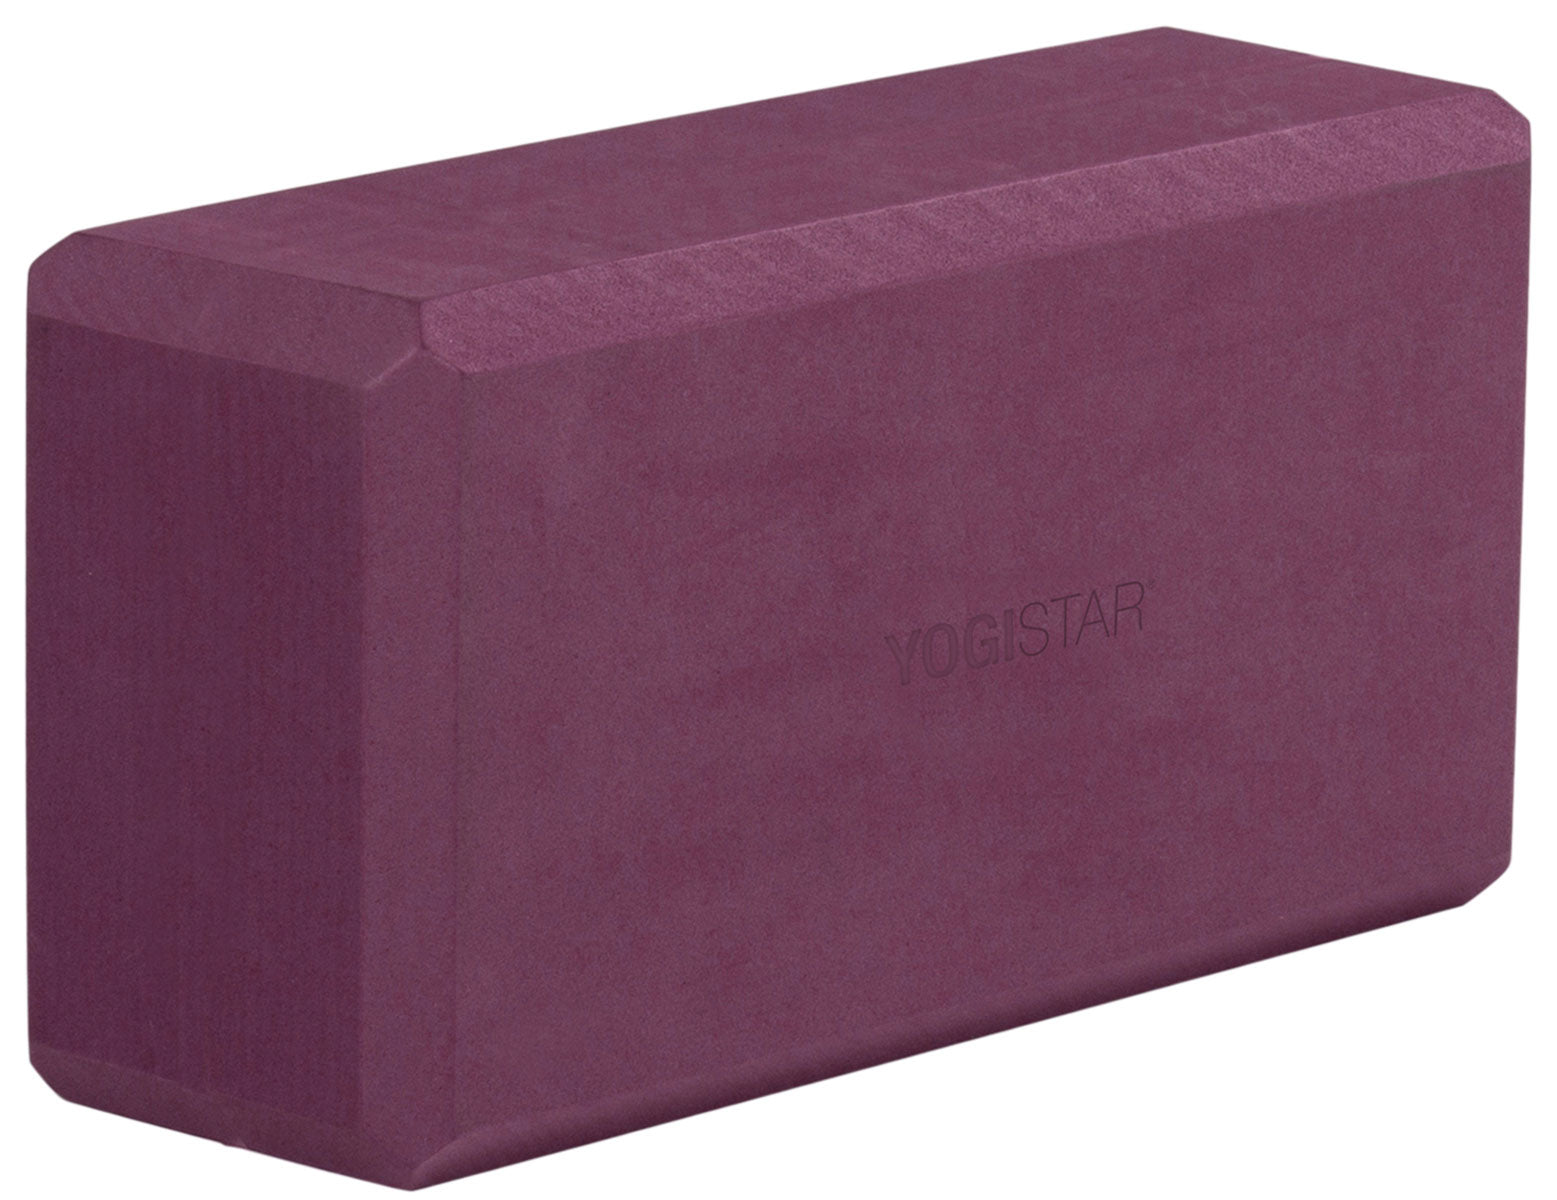 Yogablock Basic Bordeaux Yogistar